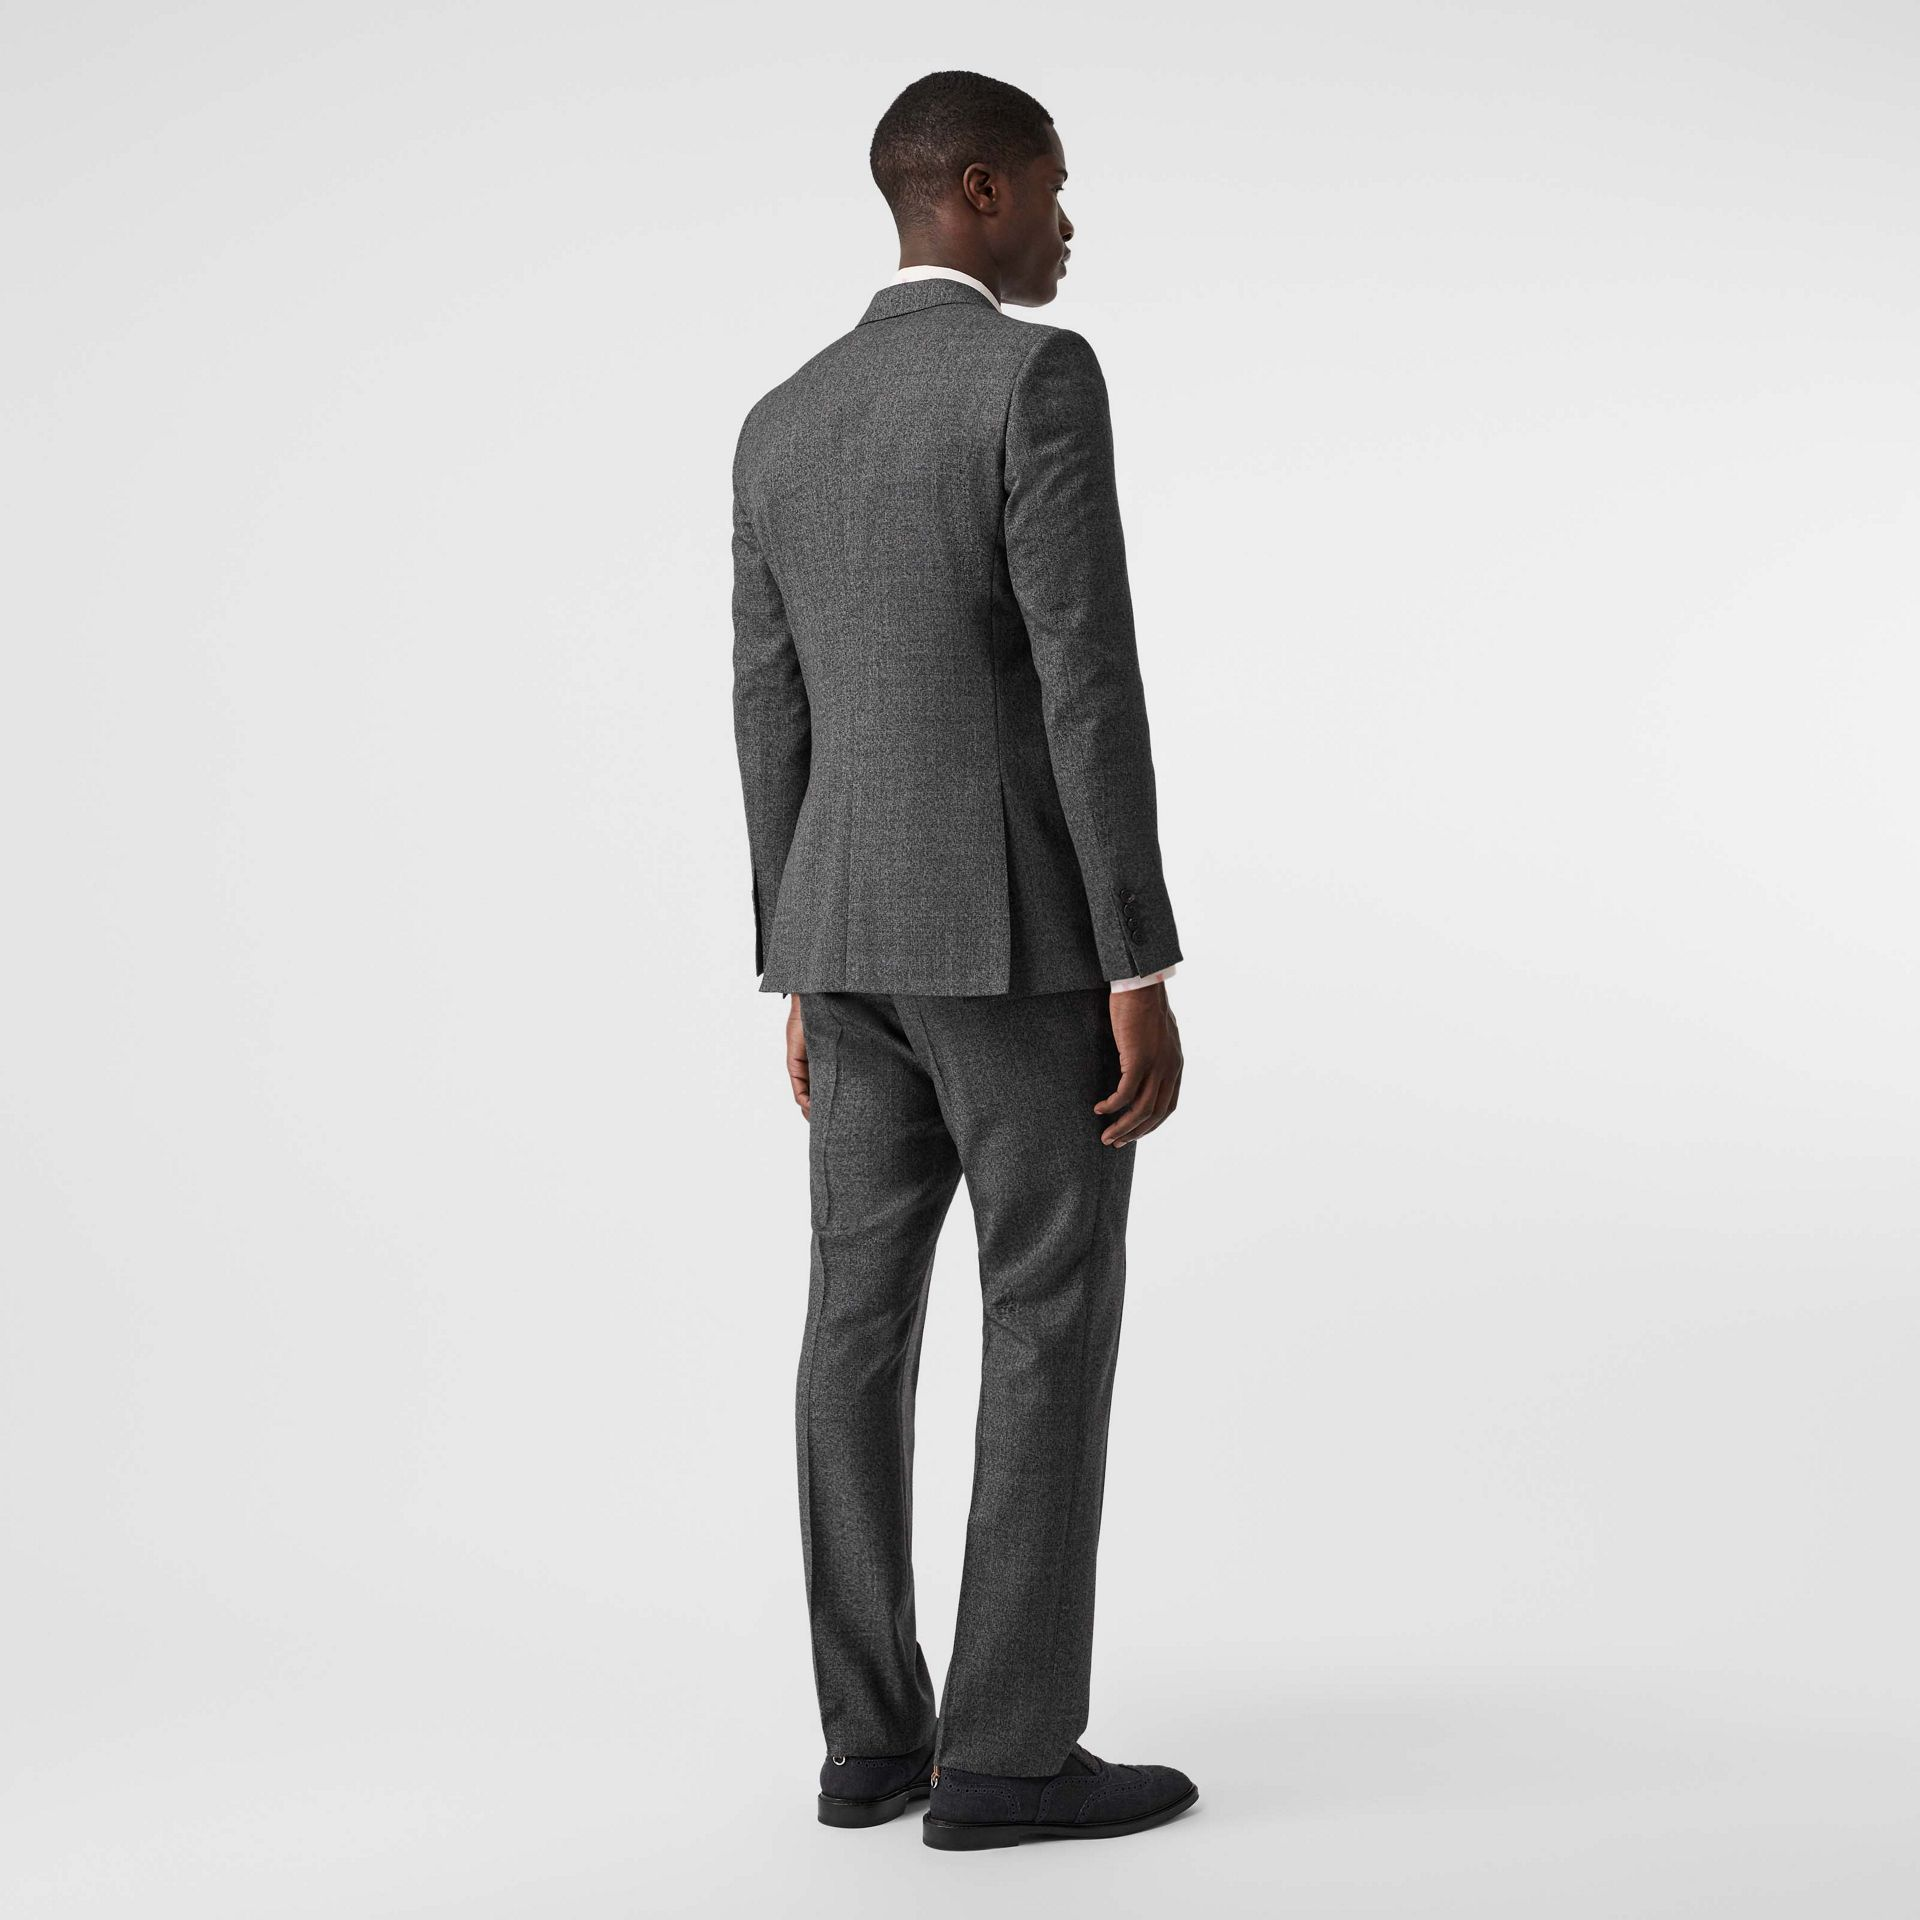 English Fit Sharkskin Wool Suit in Black Melange - Men | Burberry Australia - gallery image 2